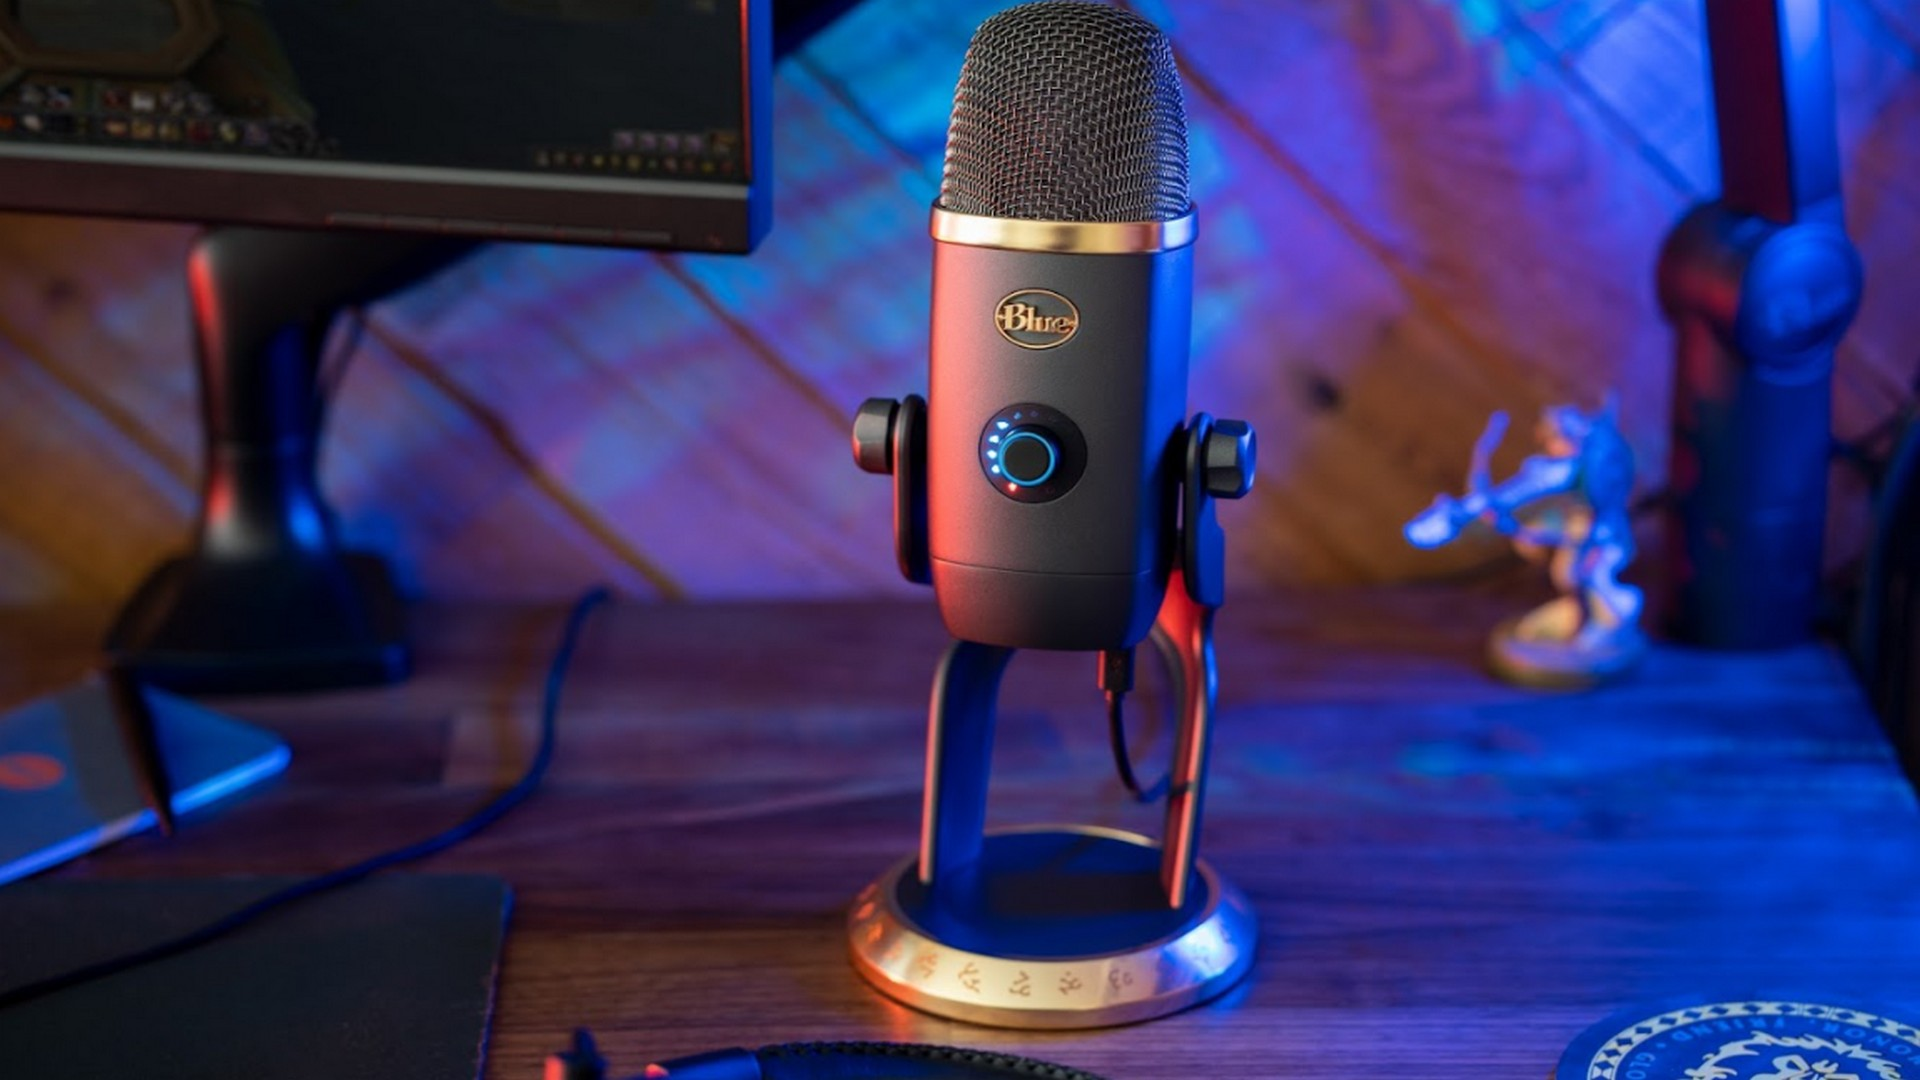 In Collaboration With Blizzard Entertainment, Blue Microphones Introduces Yeti X World of Warcraft Edition With Voice Modulation Effect & HD Samples